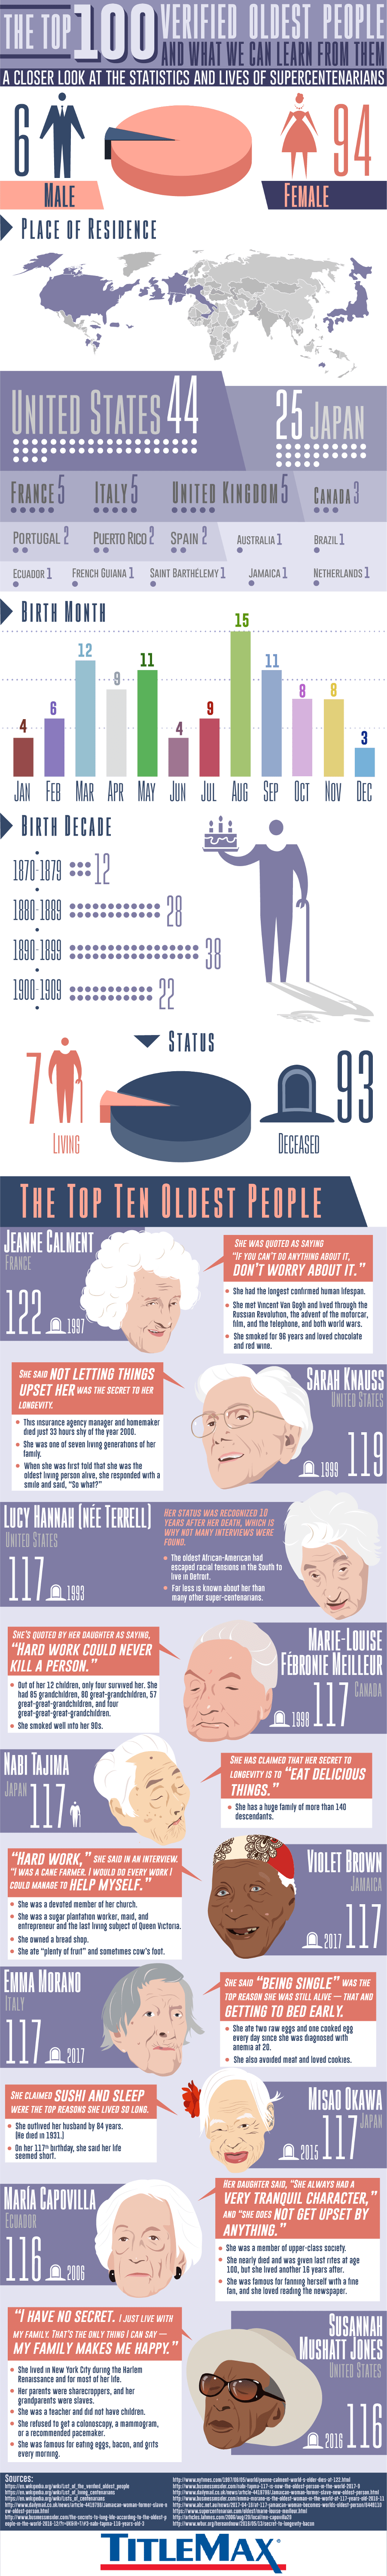 Wisdom of the Ages: The Top 100 Verified List of Oldest People and Their Beliefs - Infographic